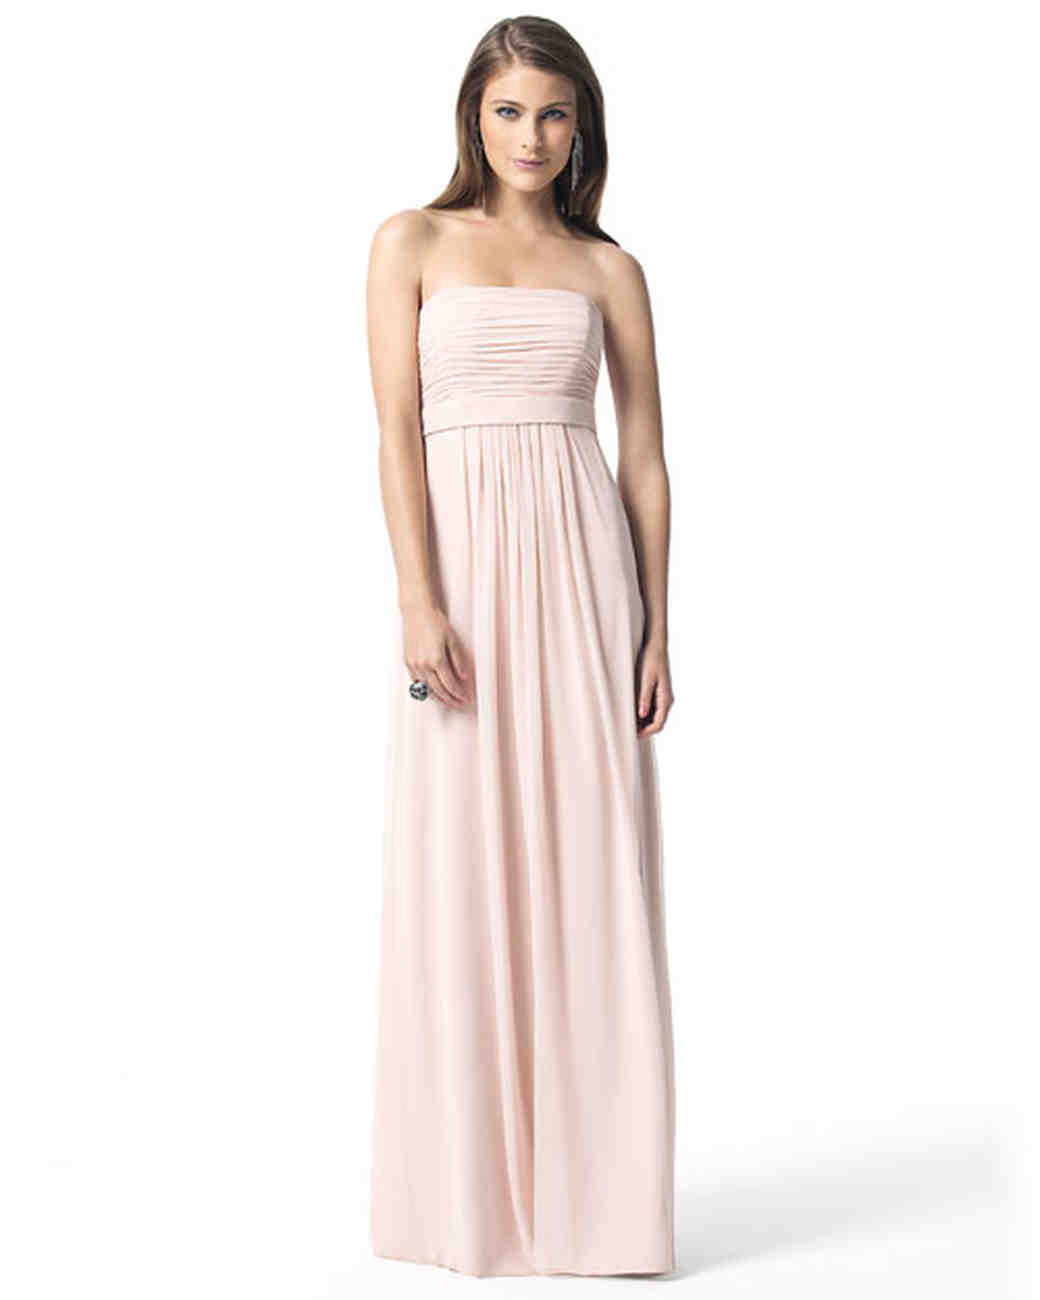 Bridesmaid Dresses For Beach Weddings